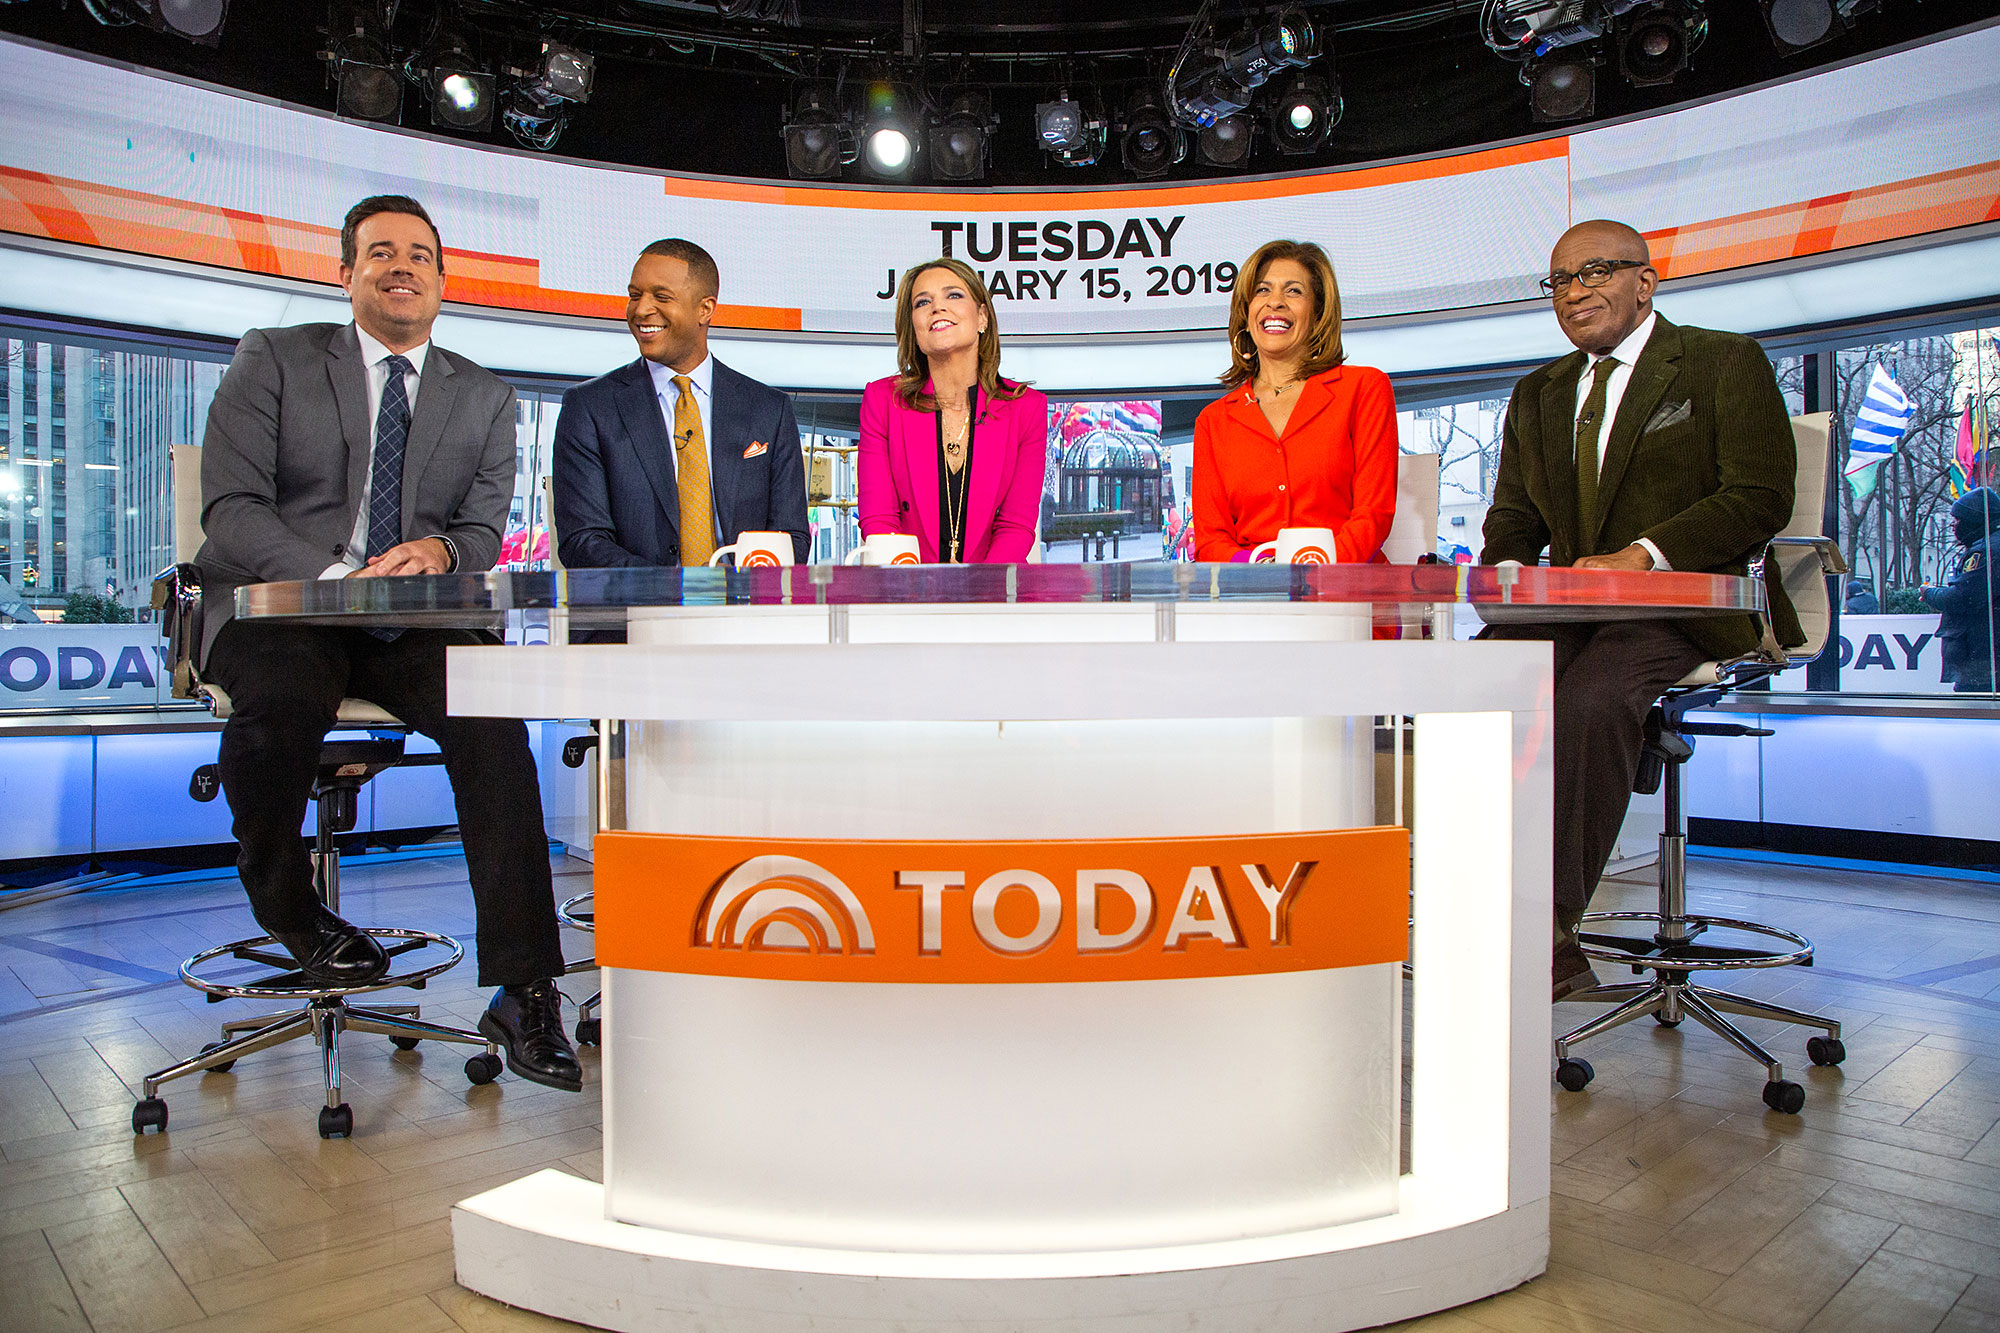 Carson Daly Reveals He Is 'Scared of Loving' His Three Kids Too Much - (L-R) Carson Daly, Craig Melvin, Savannah Guthrie, Hoda Kotb and Al Roker during an episode of 'Today' January 15, 2019.